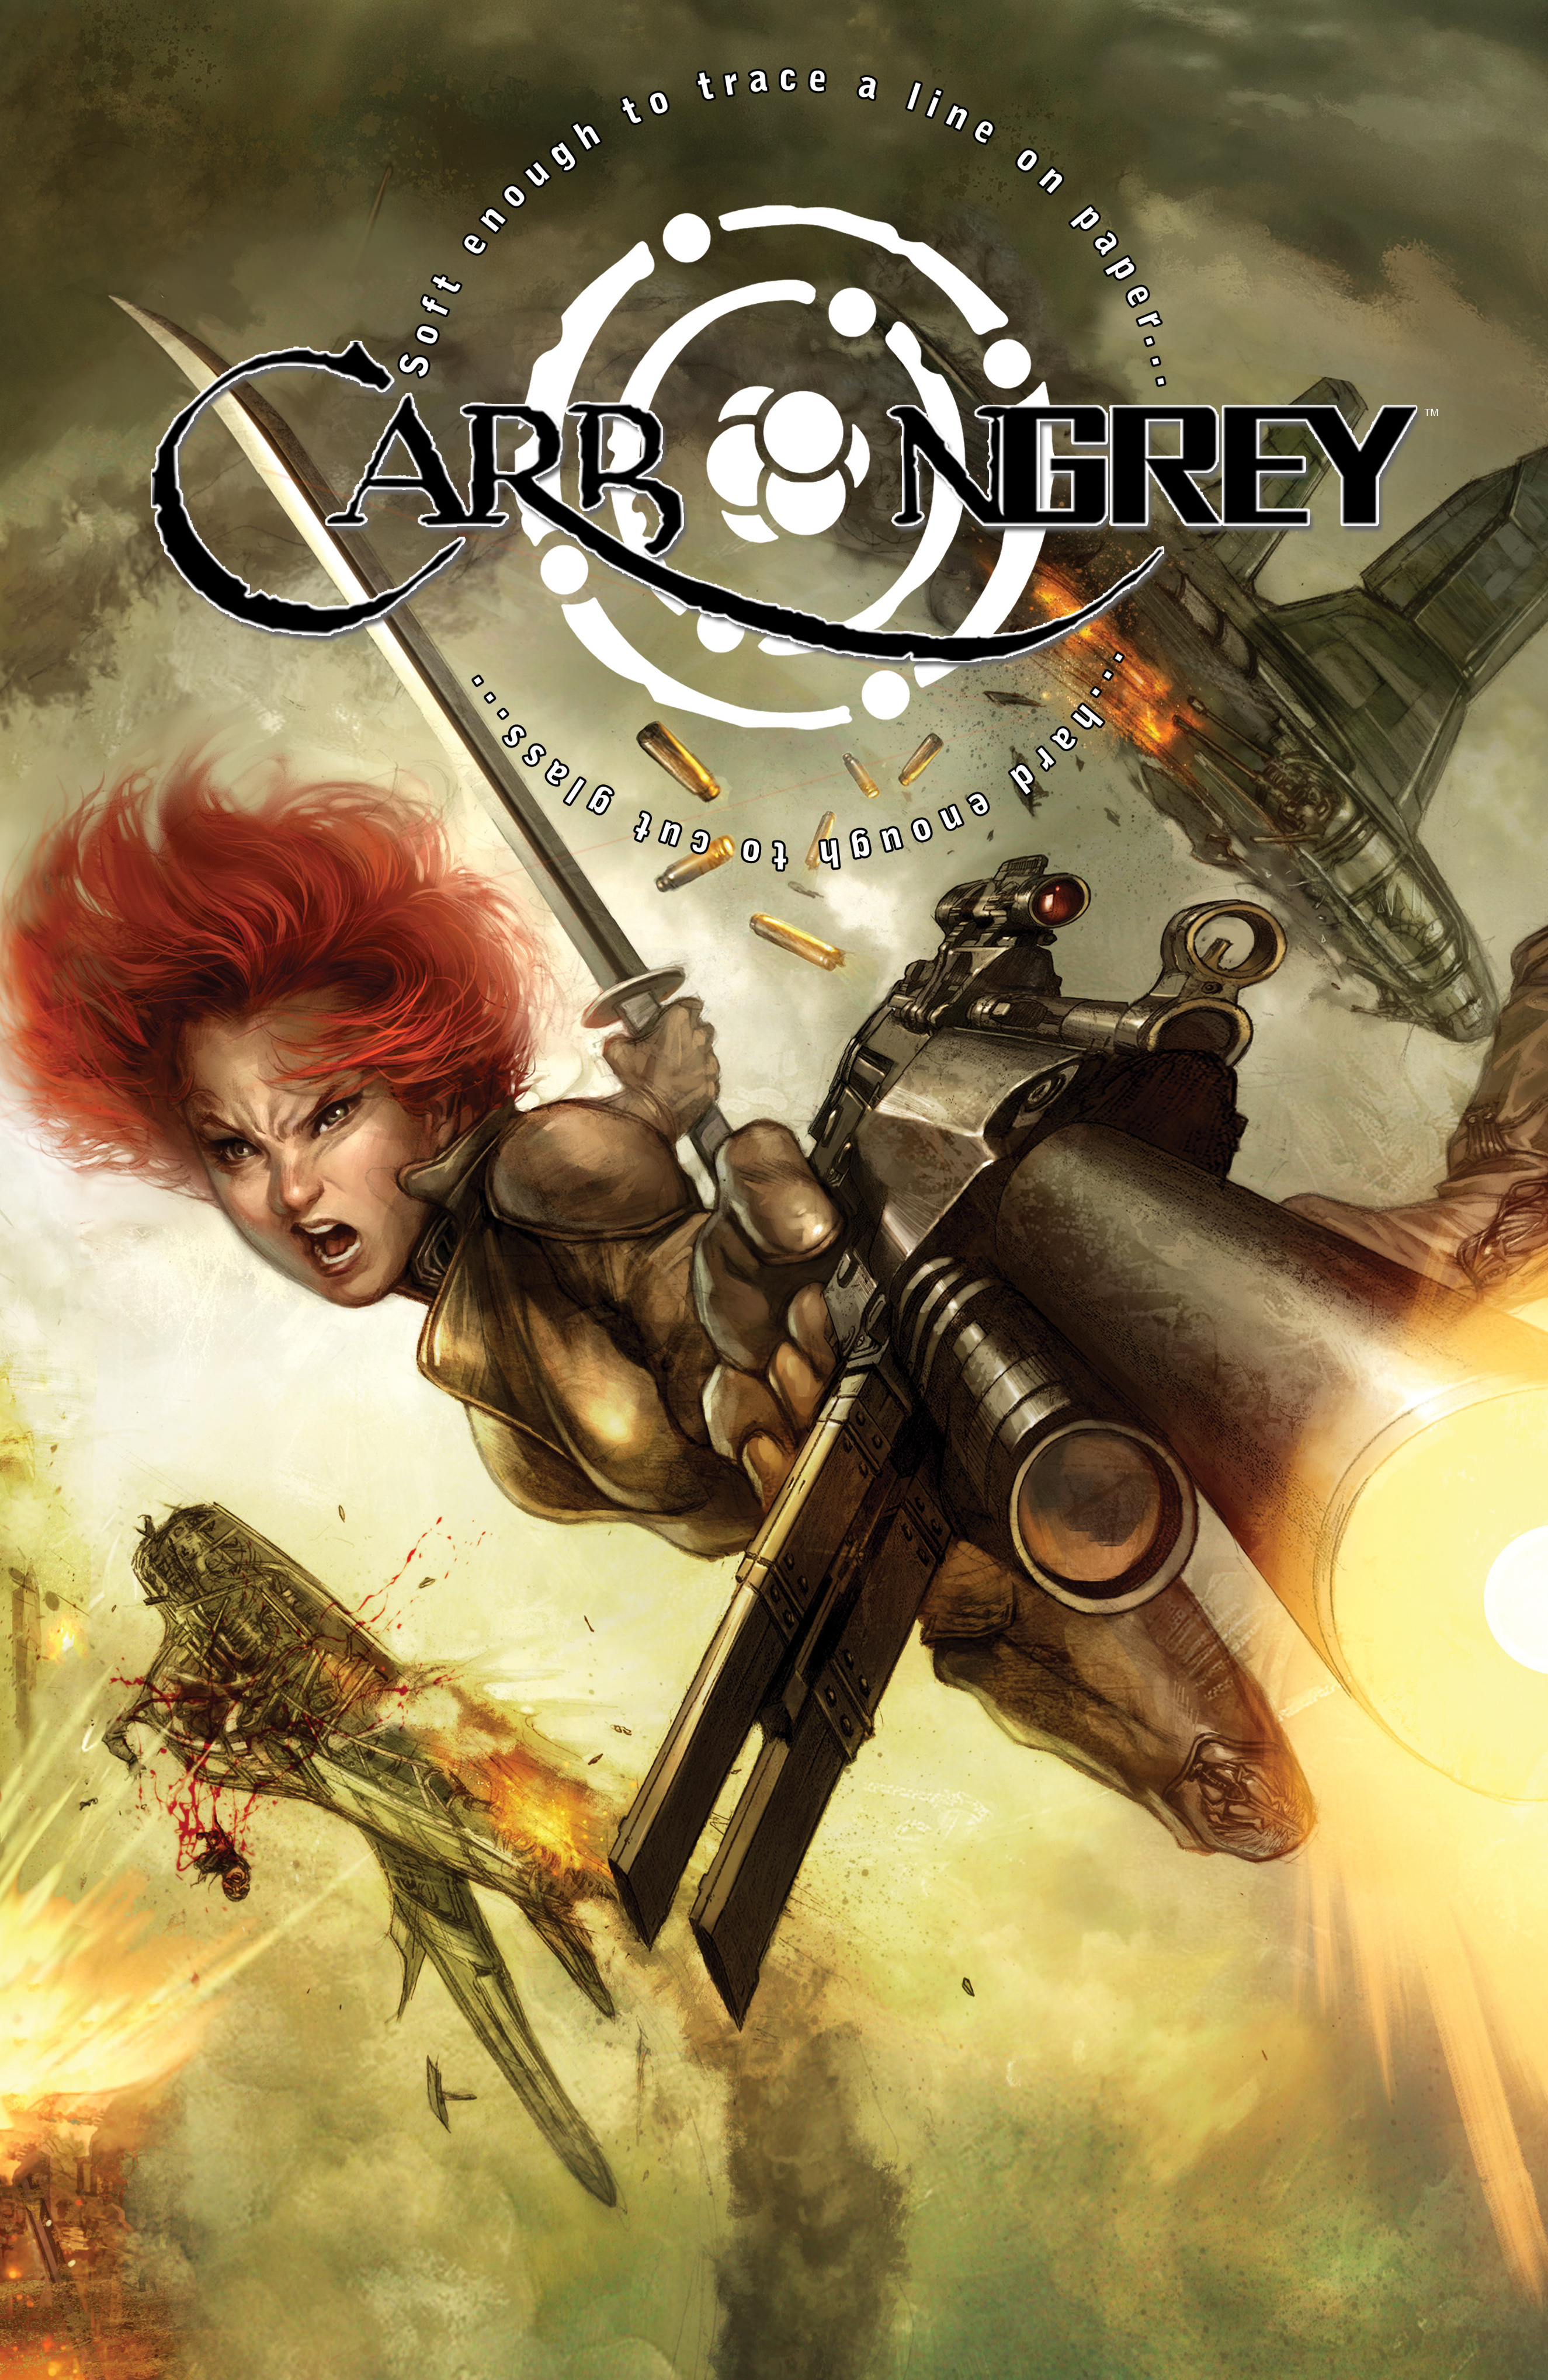 Read online Carbon Grey Omnibus comic -  Issue # Part 1 - 1